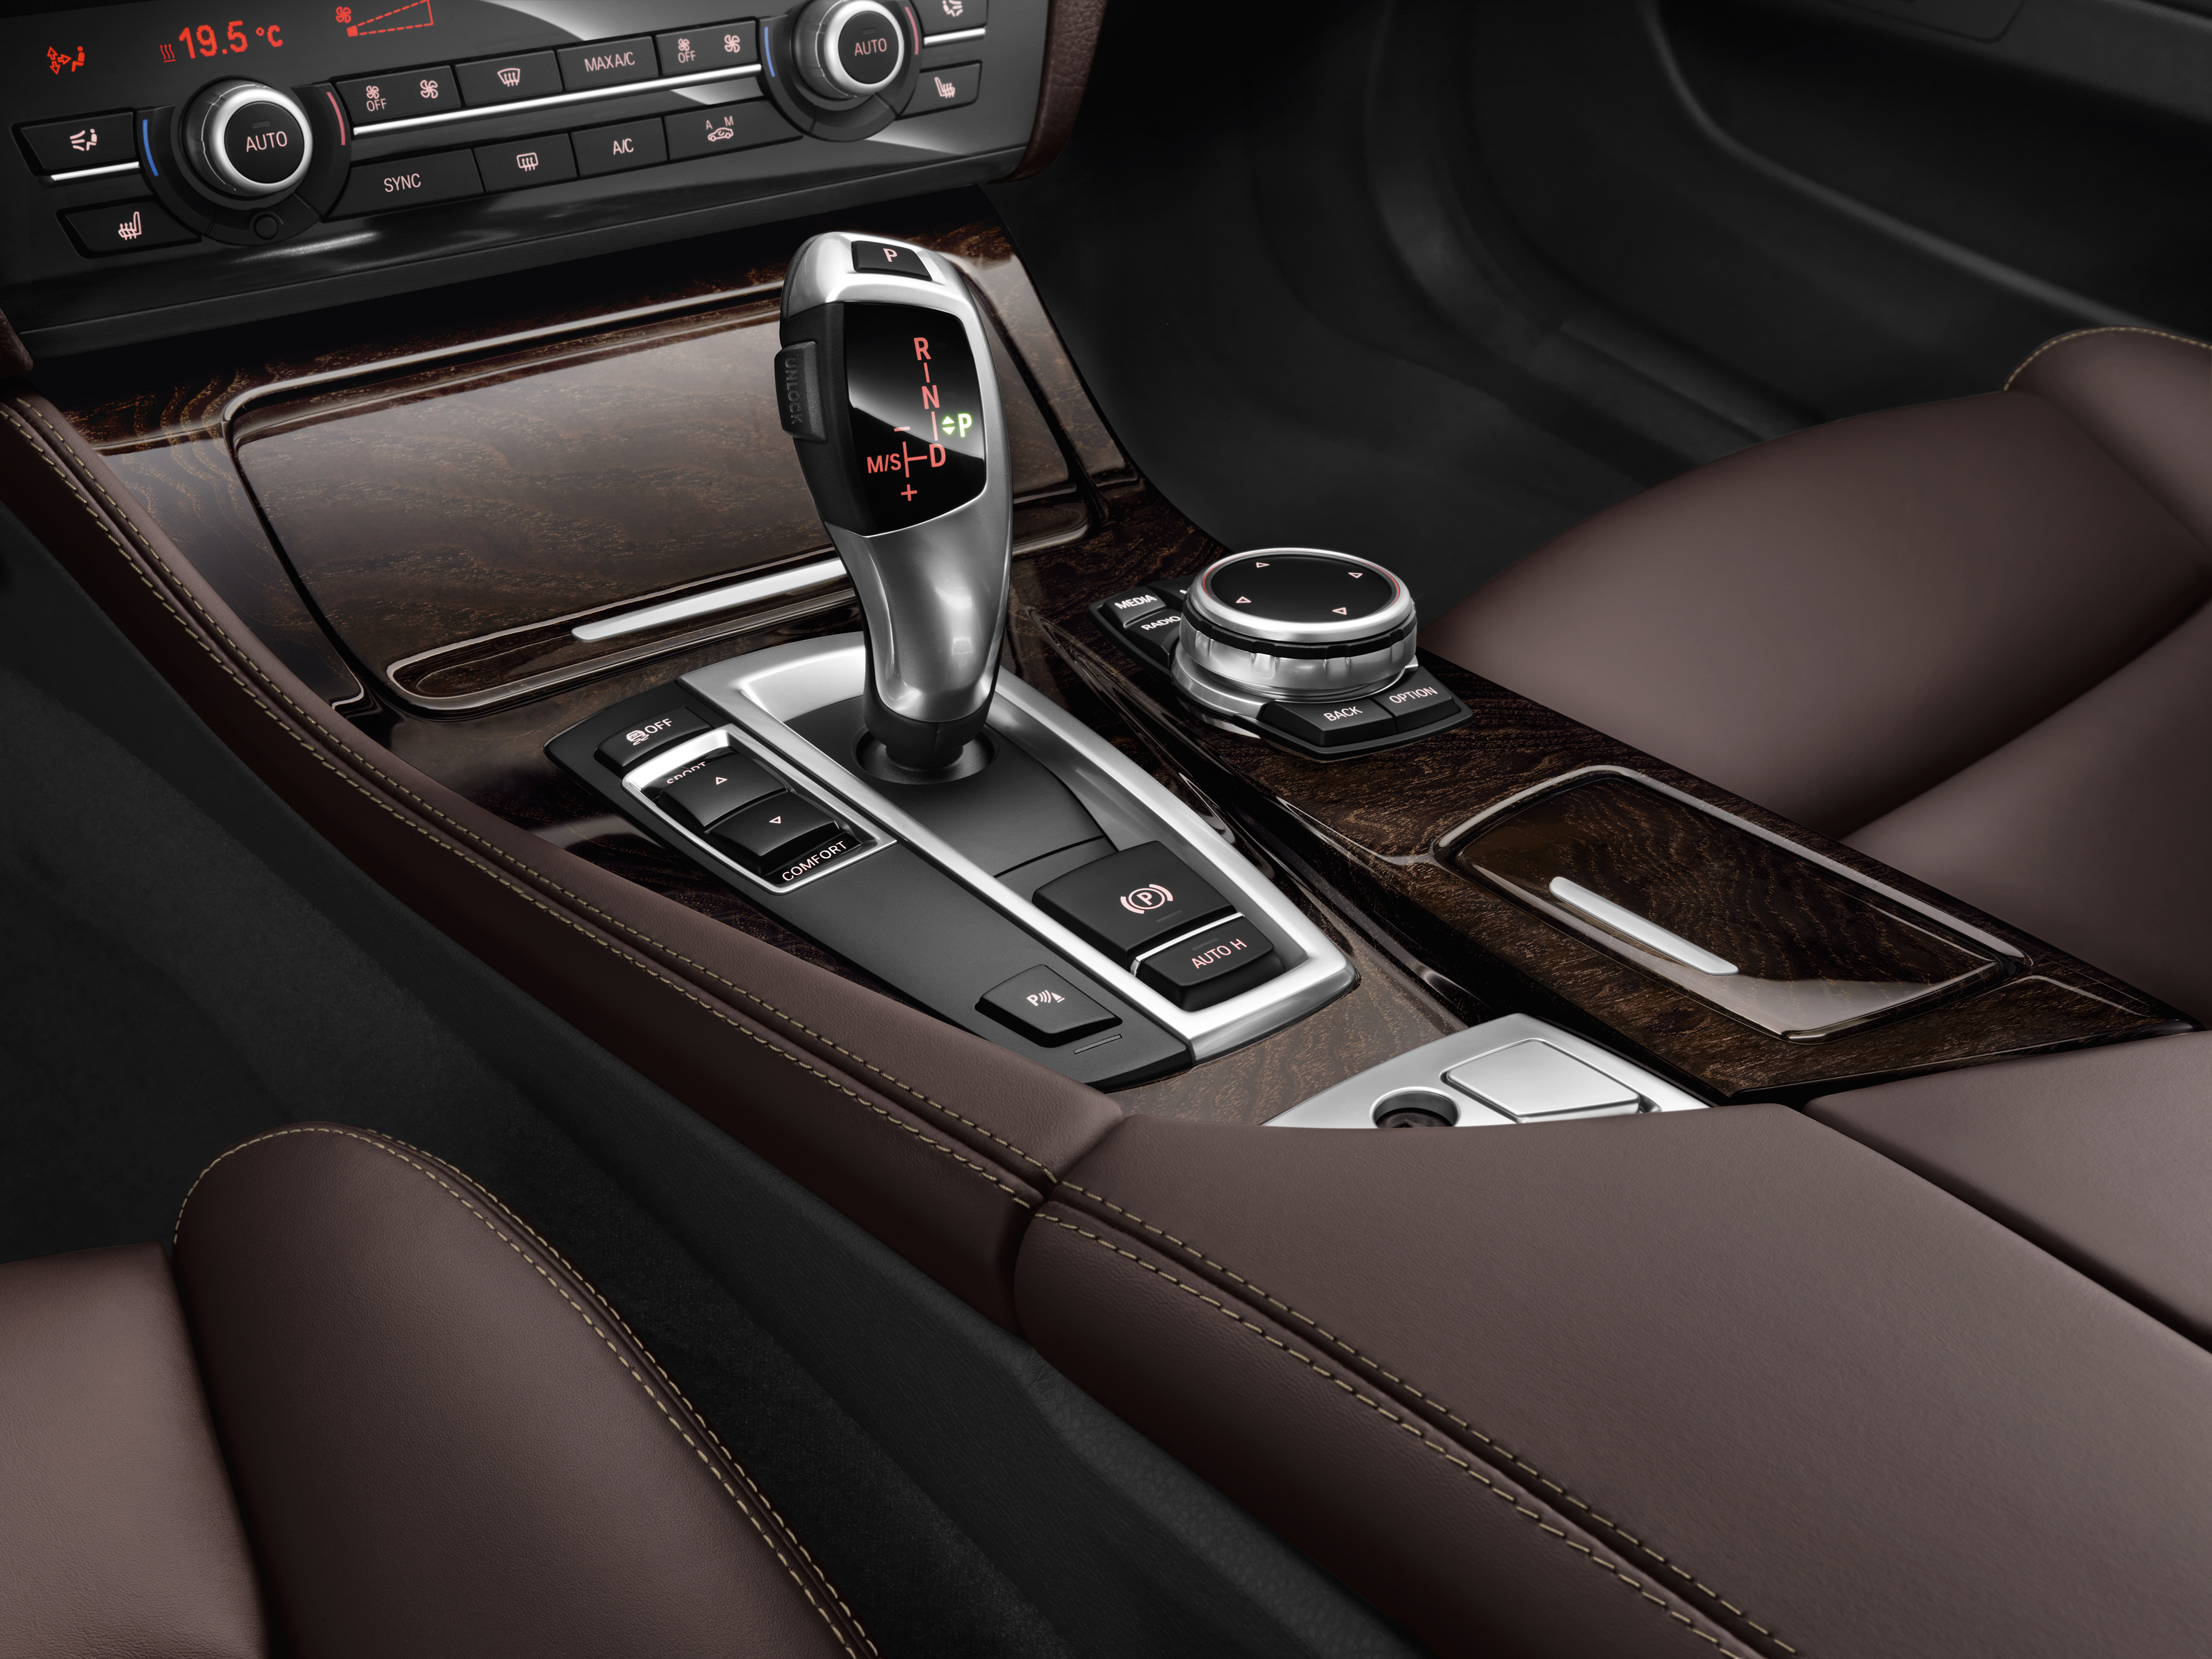 World Premier The Refreshed 2014 Bmw 5 Series Bimmerfile E86